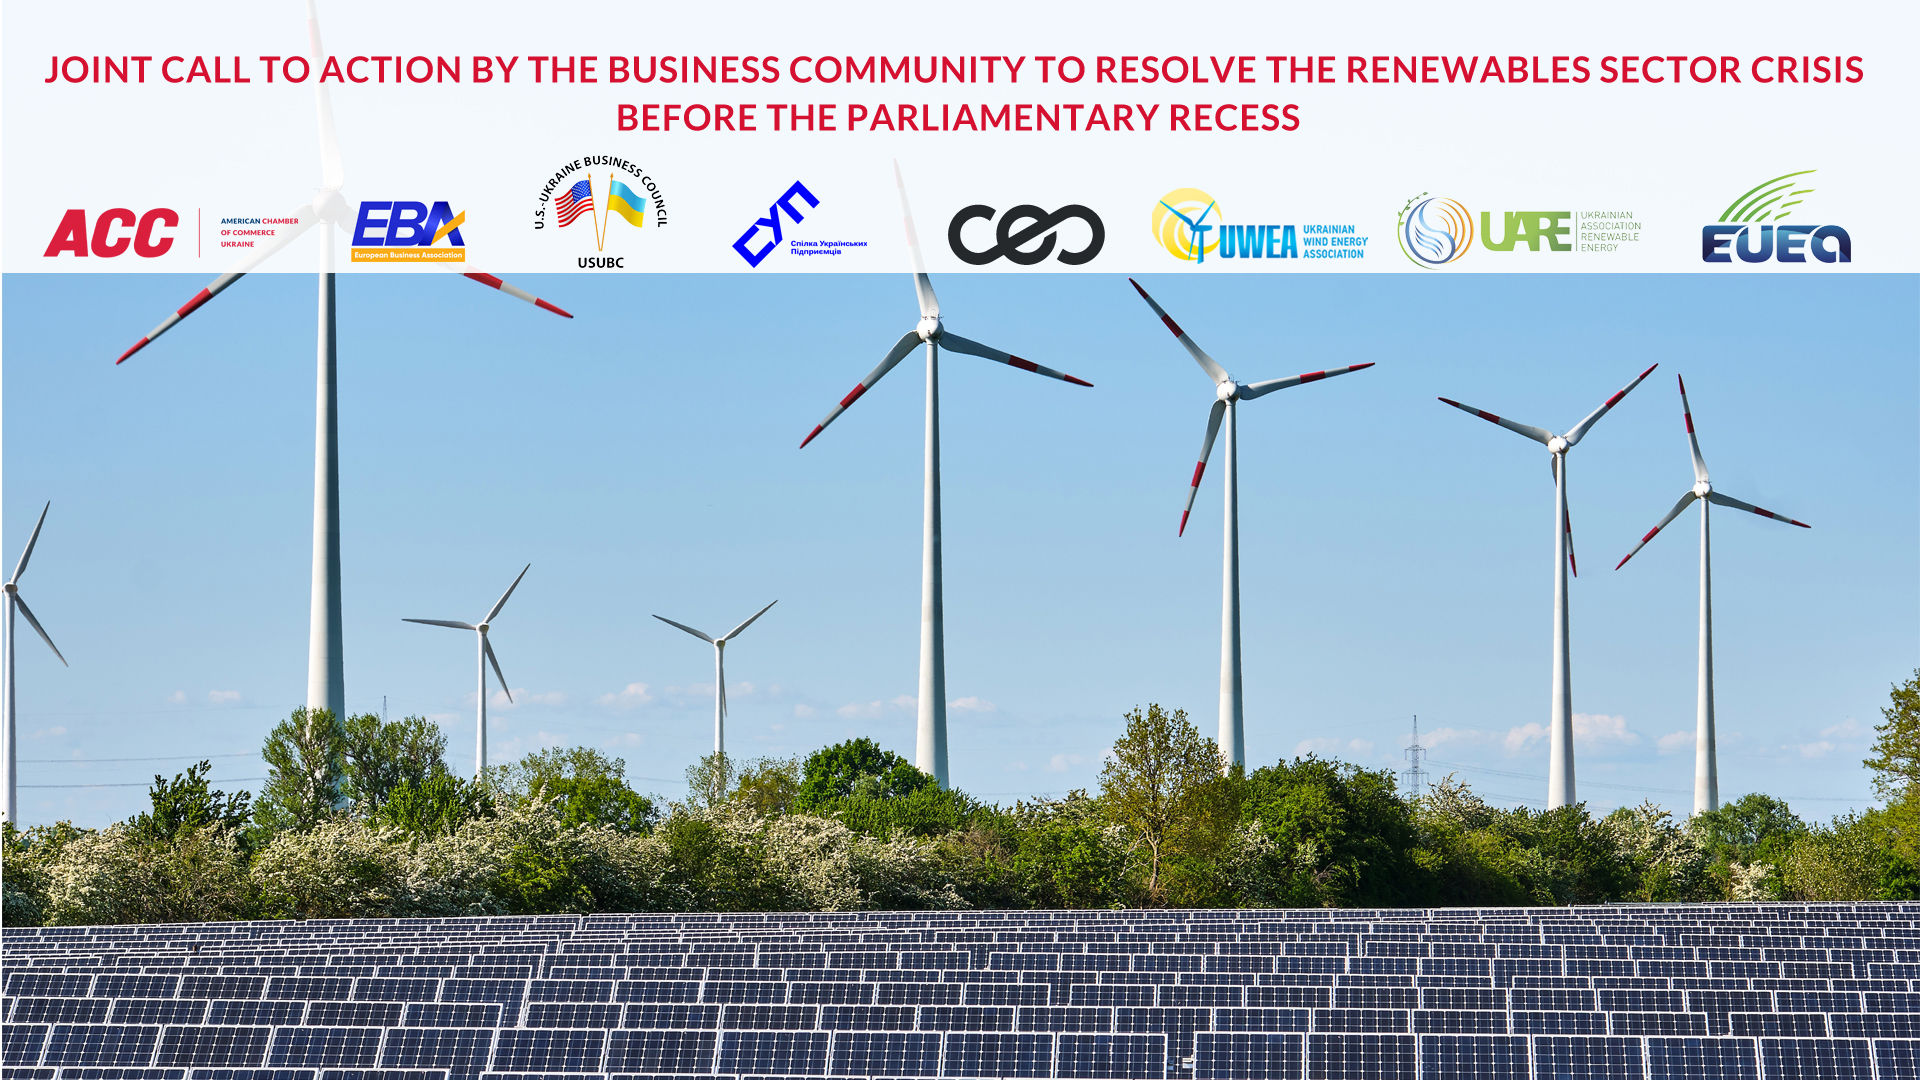 Joint Call to Action by the Business Community to Resolve the Renewables Sector Crisis Before the Parliamentary Recess